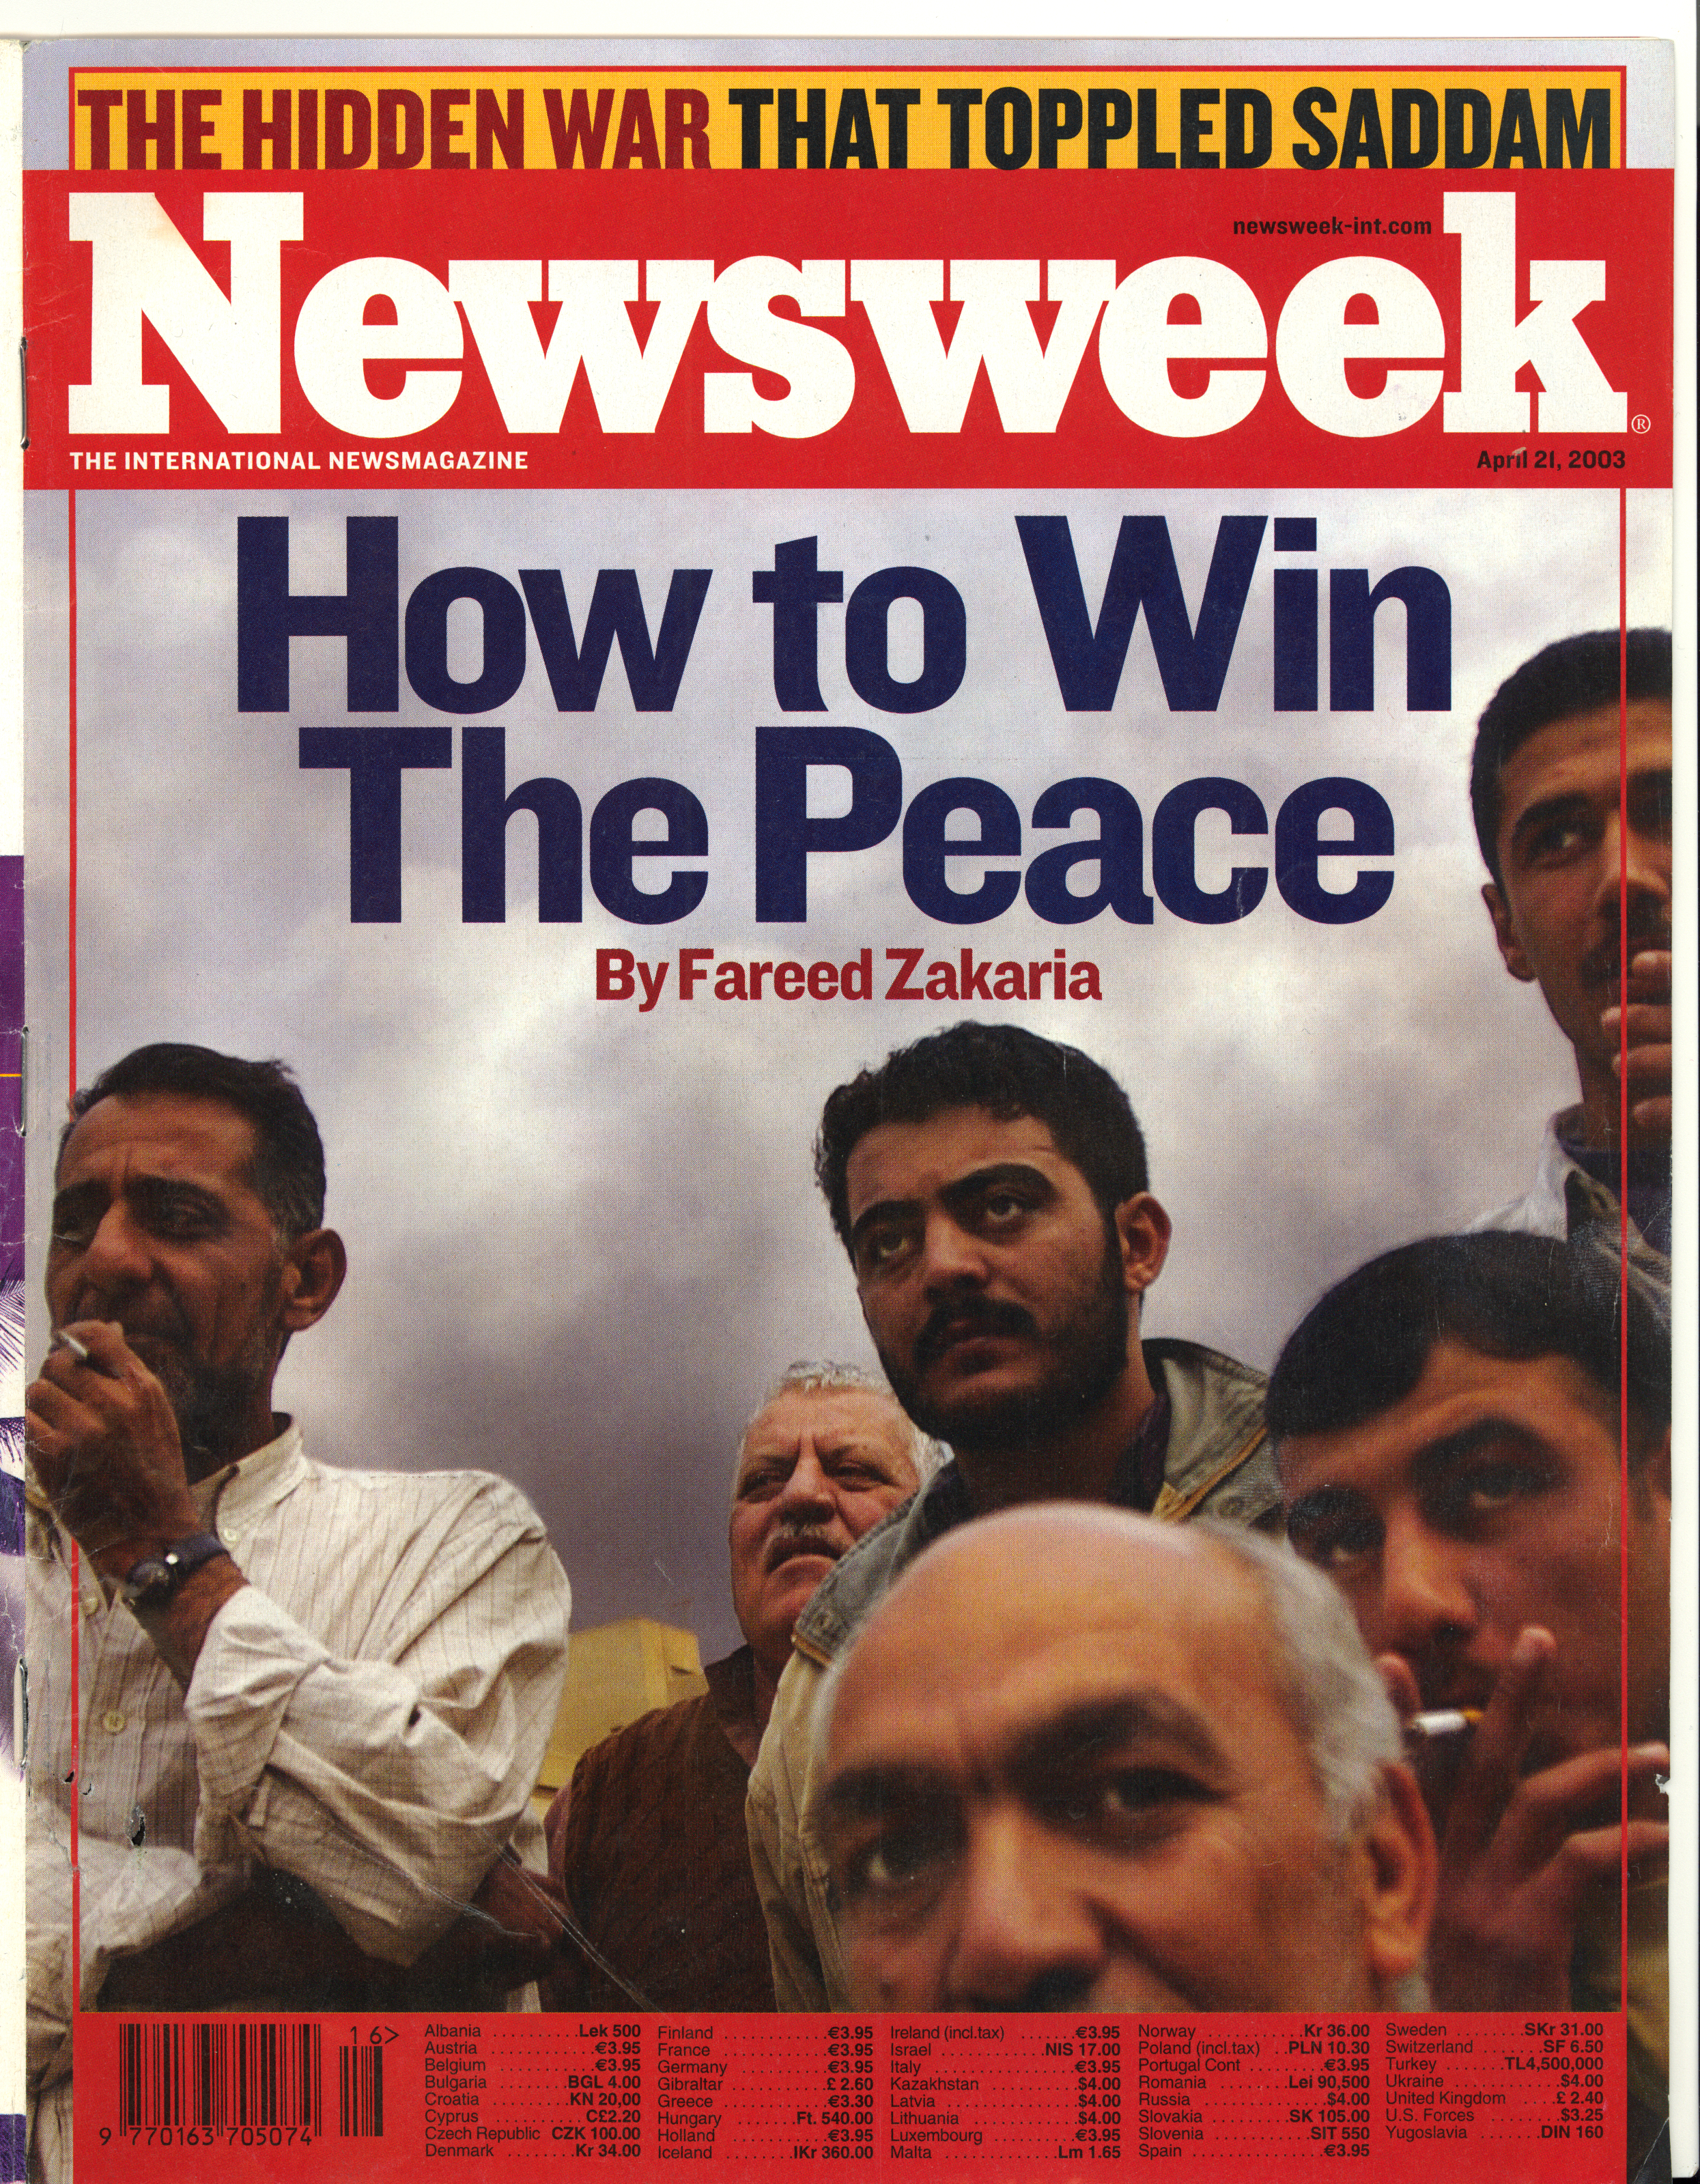 04212003_NEWSWEEK_IRAQ_COVER.jpg